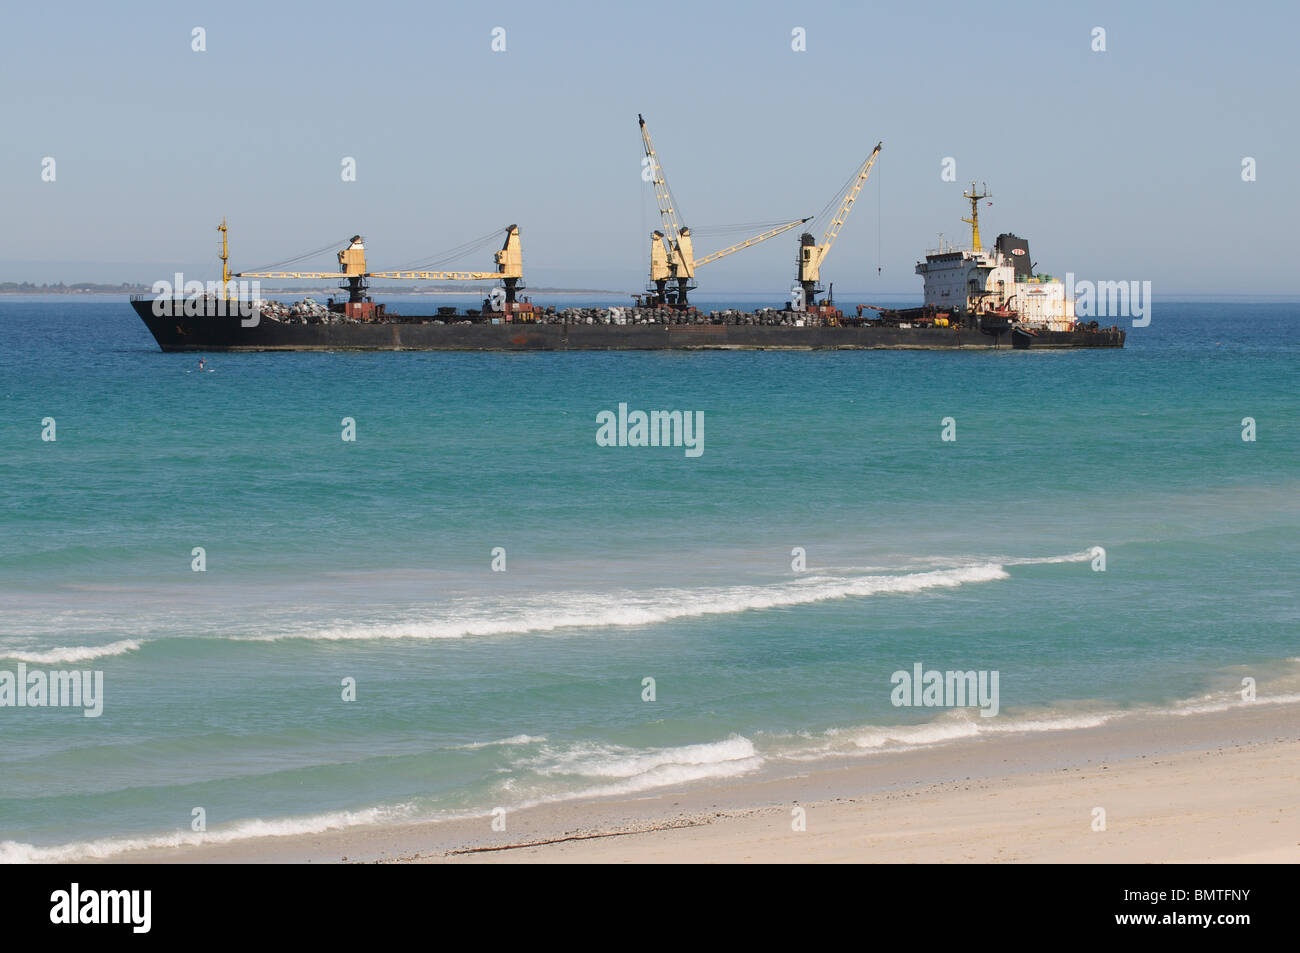 The Seli 1 a small bulk carrier aground in Table Bay Cape Town South Africa - Stock Image